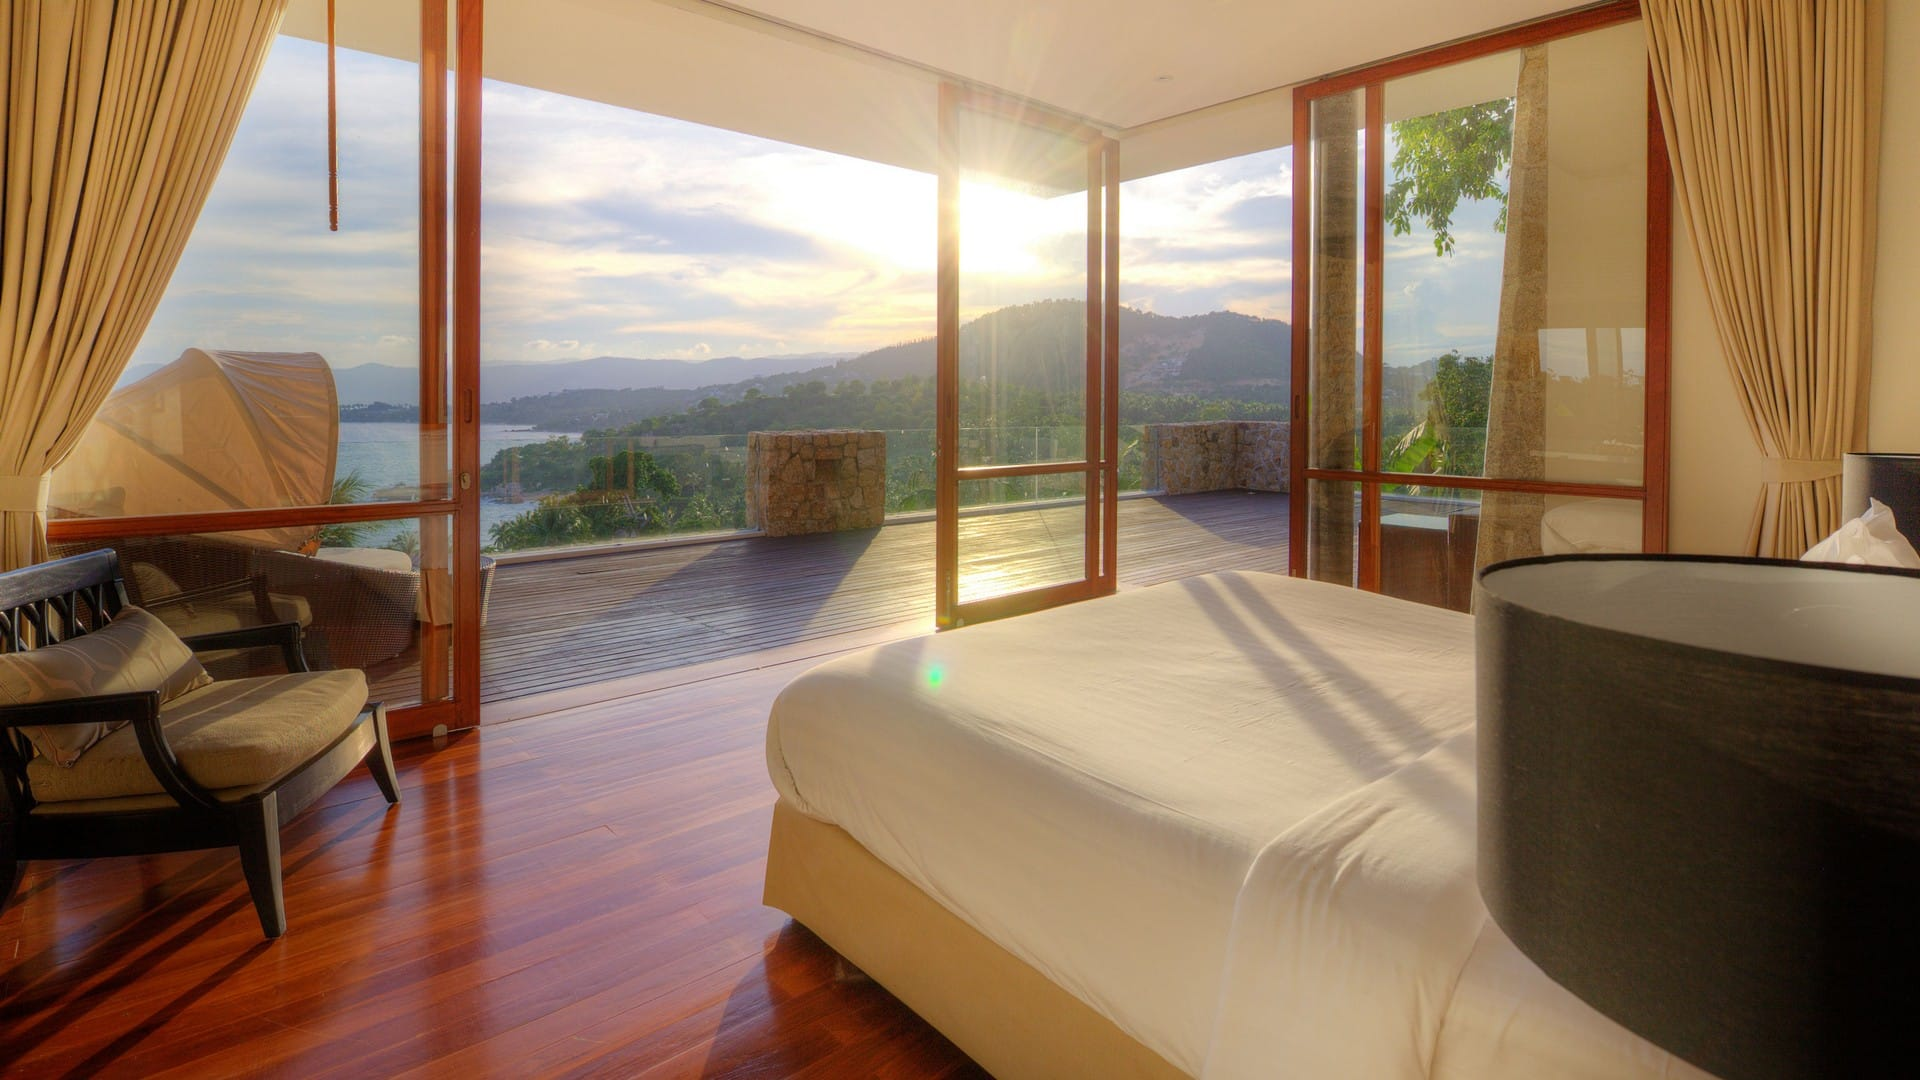 samujana-villa-6-master-bed-sunset